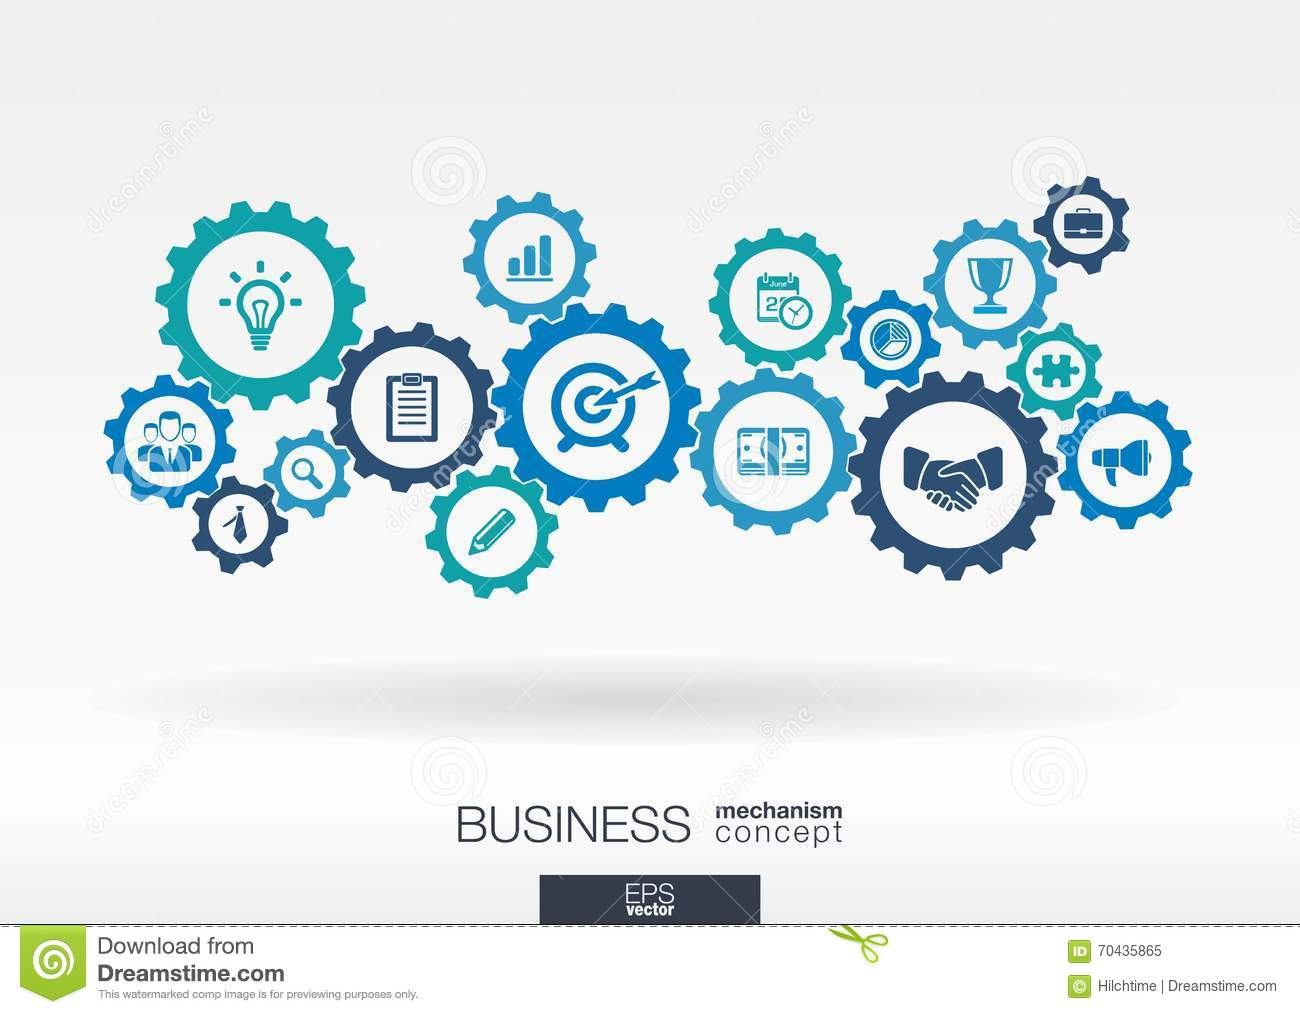 business mechanism concept  abstract background with connected gears and icons for strategy